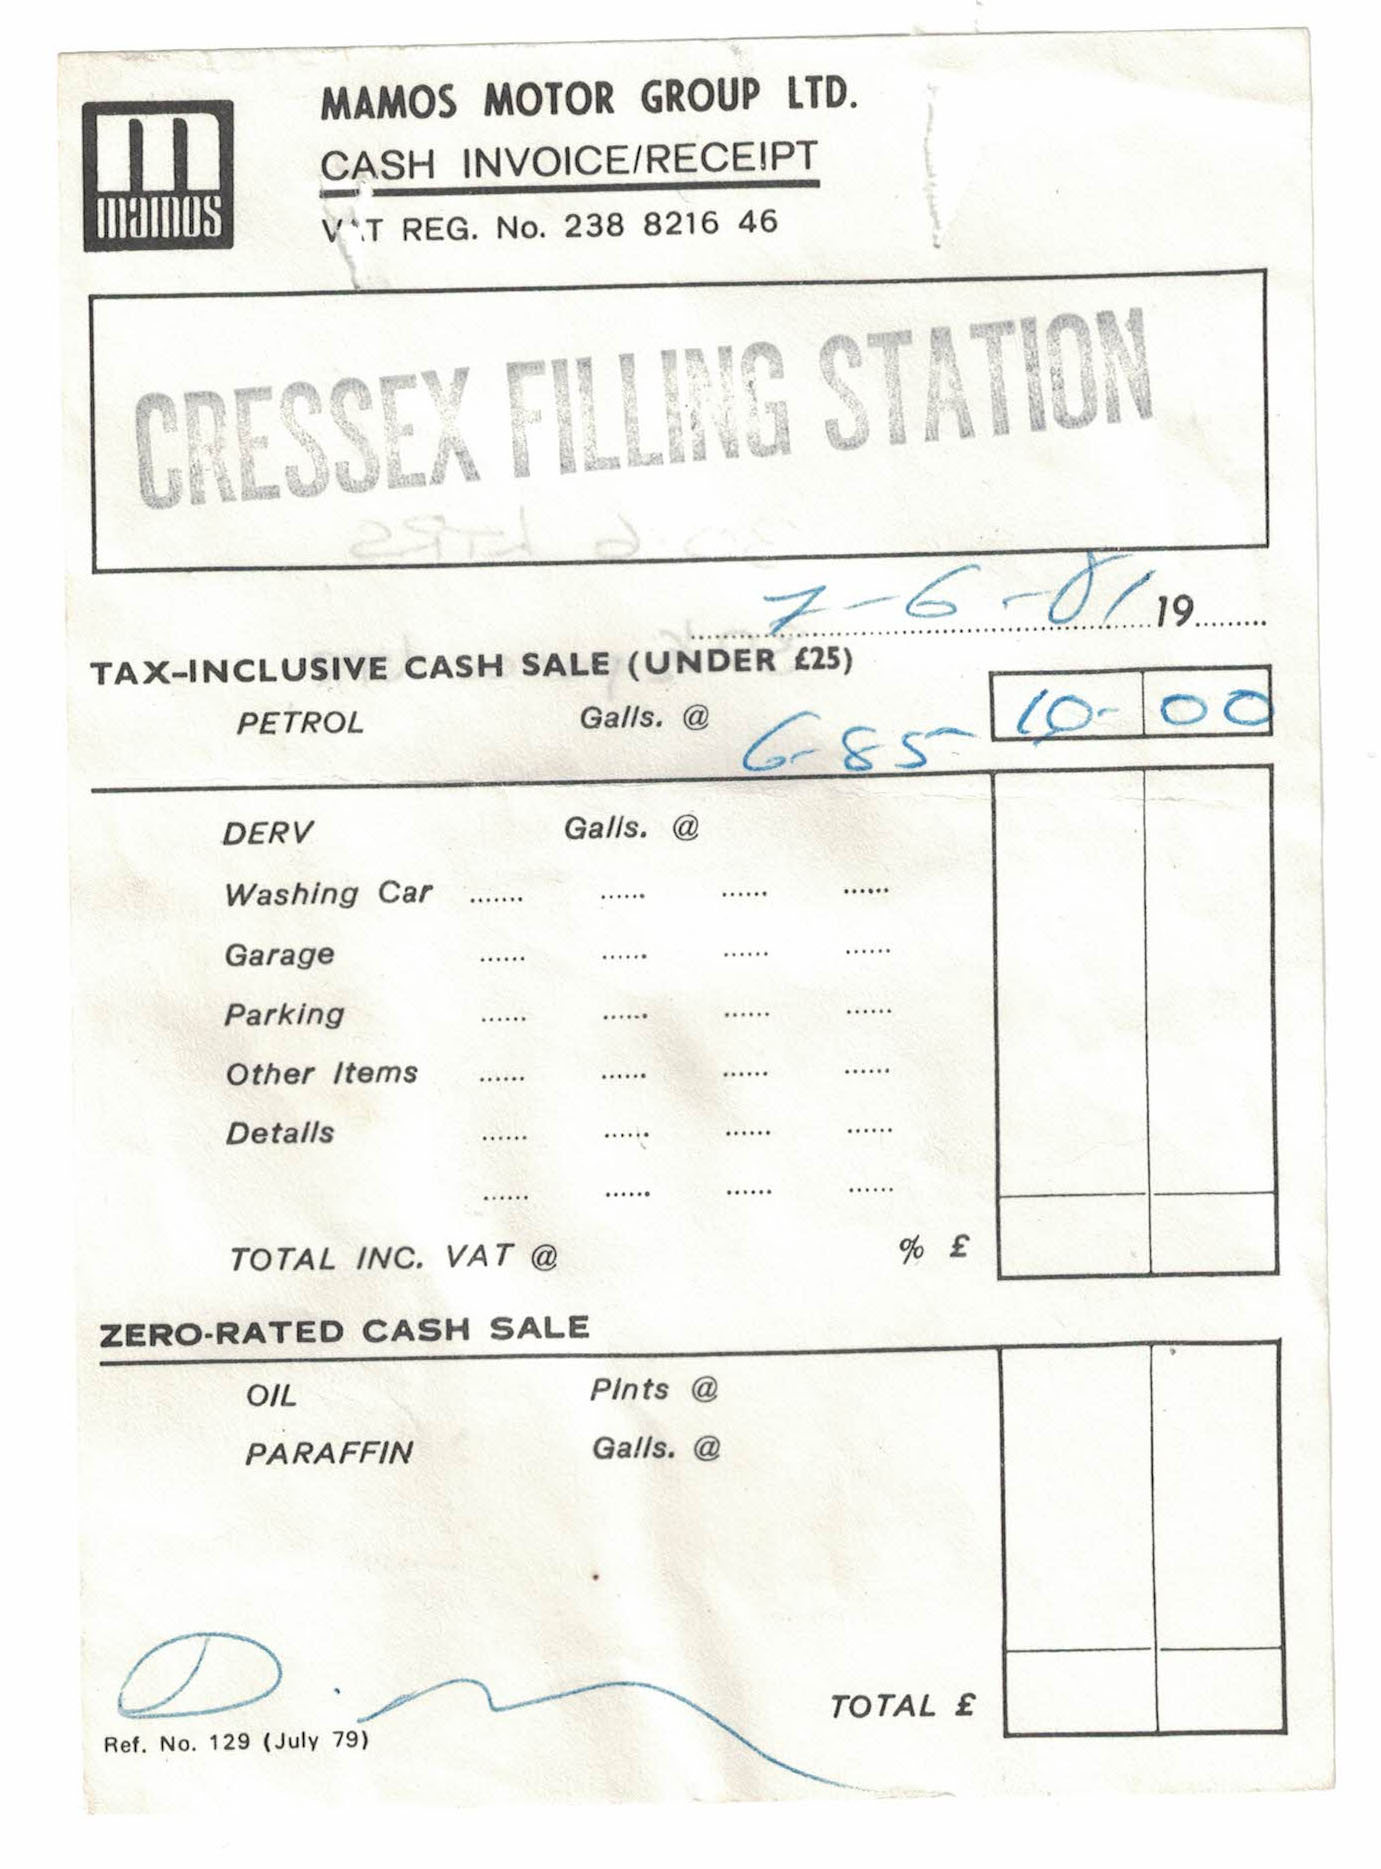 32p a litre for fuel!! - June 1981